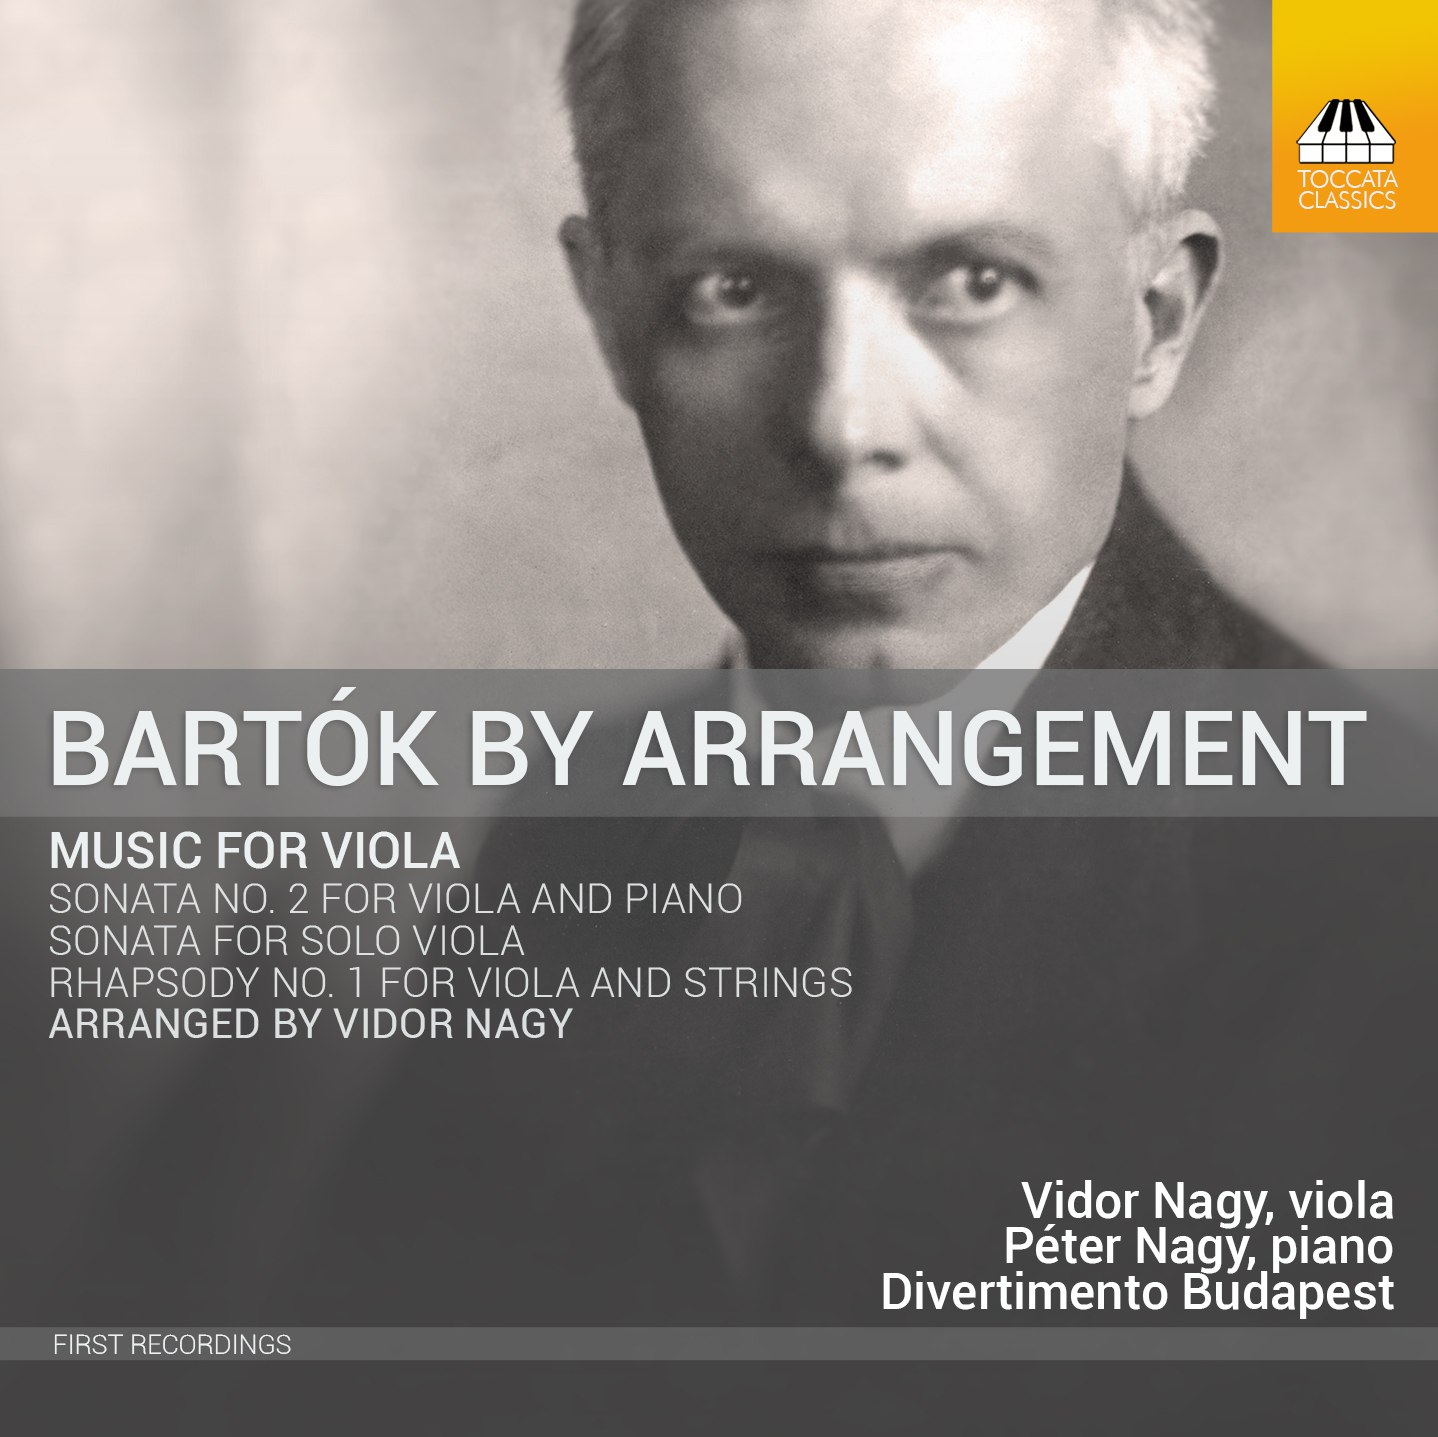 Bartók By Arrangement: Music for Viola